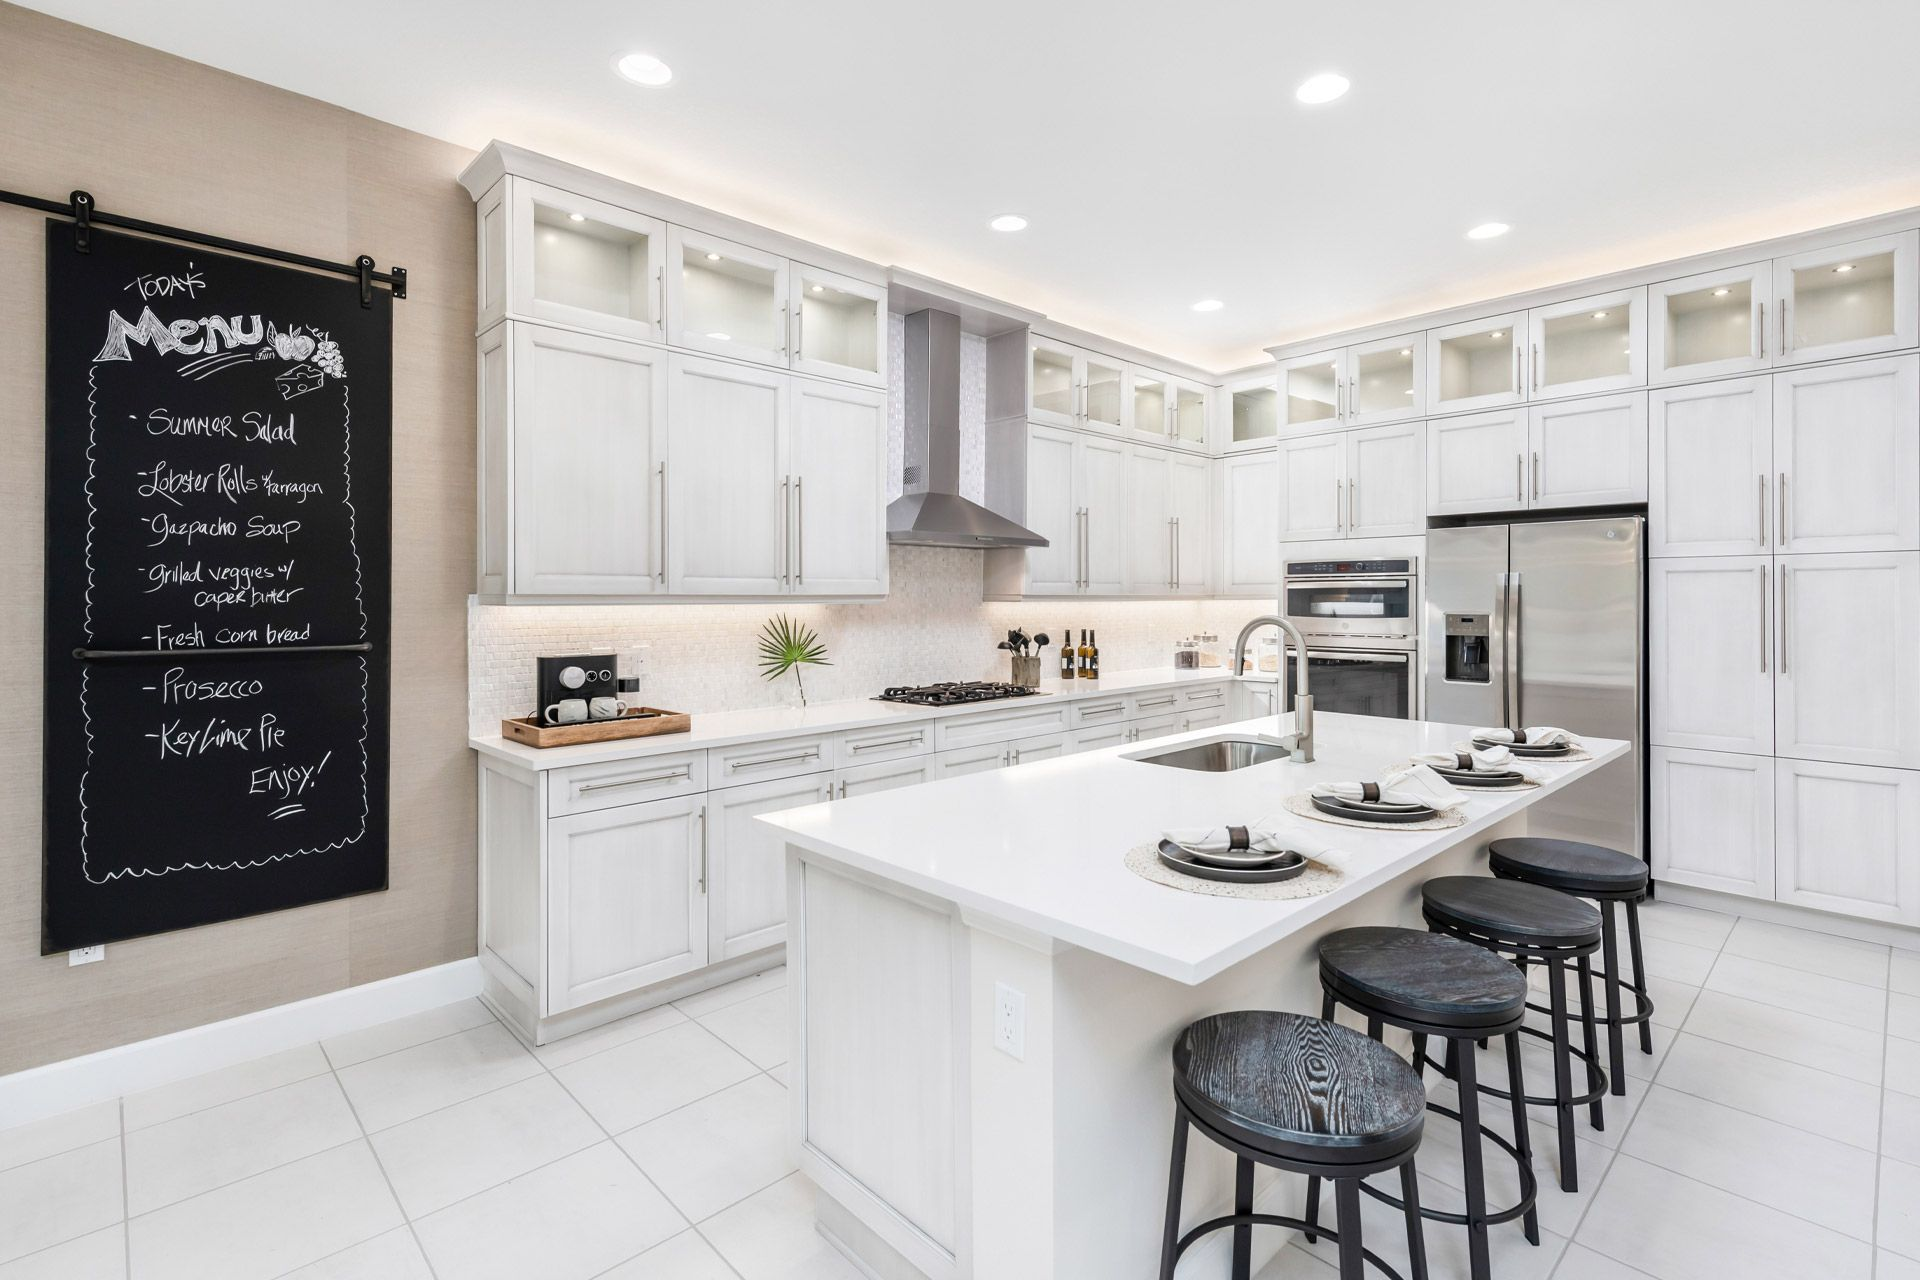 Kitchen featured in the Nautilus By GL Homes in Naples, FL